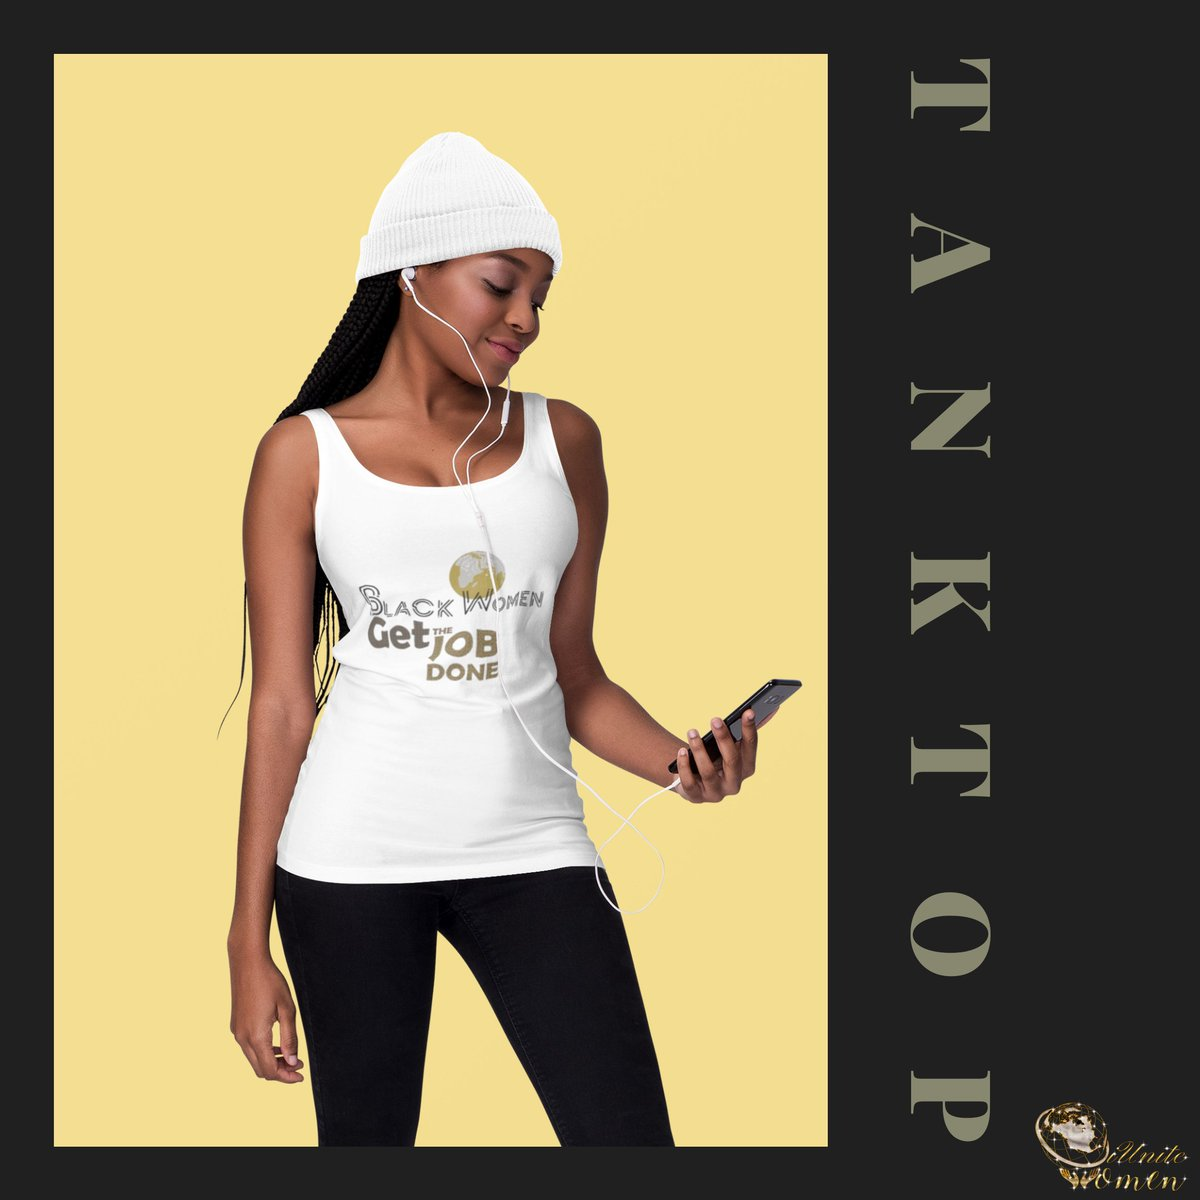 A woman is never sexier than when she is comfortable in her clothes. @iunitewomen provides you exclusive collection of tank tops 👕  Visit our store now to see more collection 🚨  Link given below ⏬ https://t.co/9Hi7b6pCeD  #womenempowerment #womensupportingwomen #women #tanktop https://t.co/vq3P18FHMi